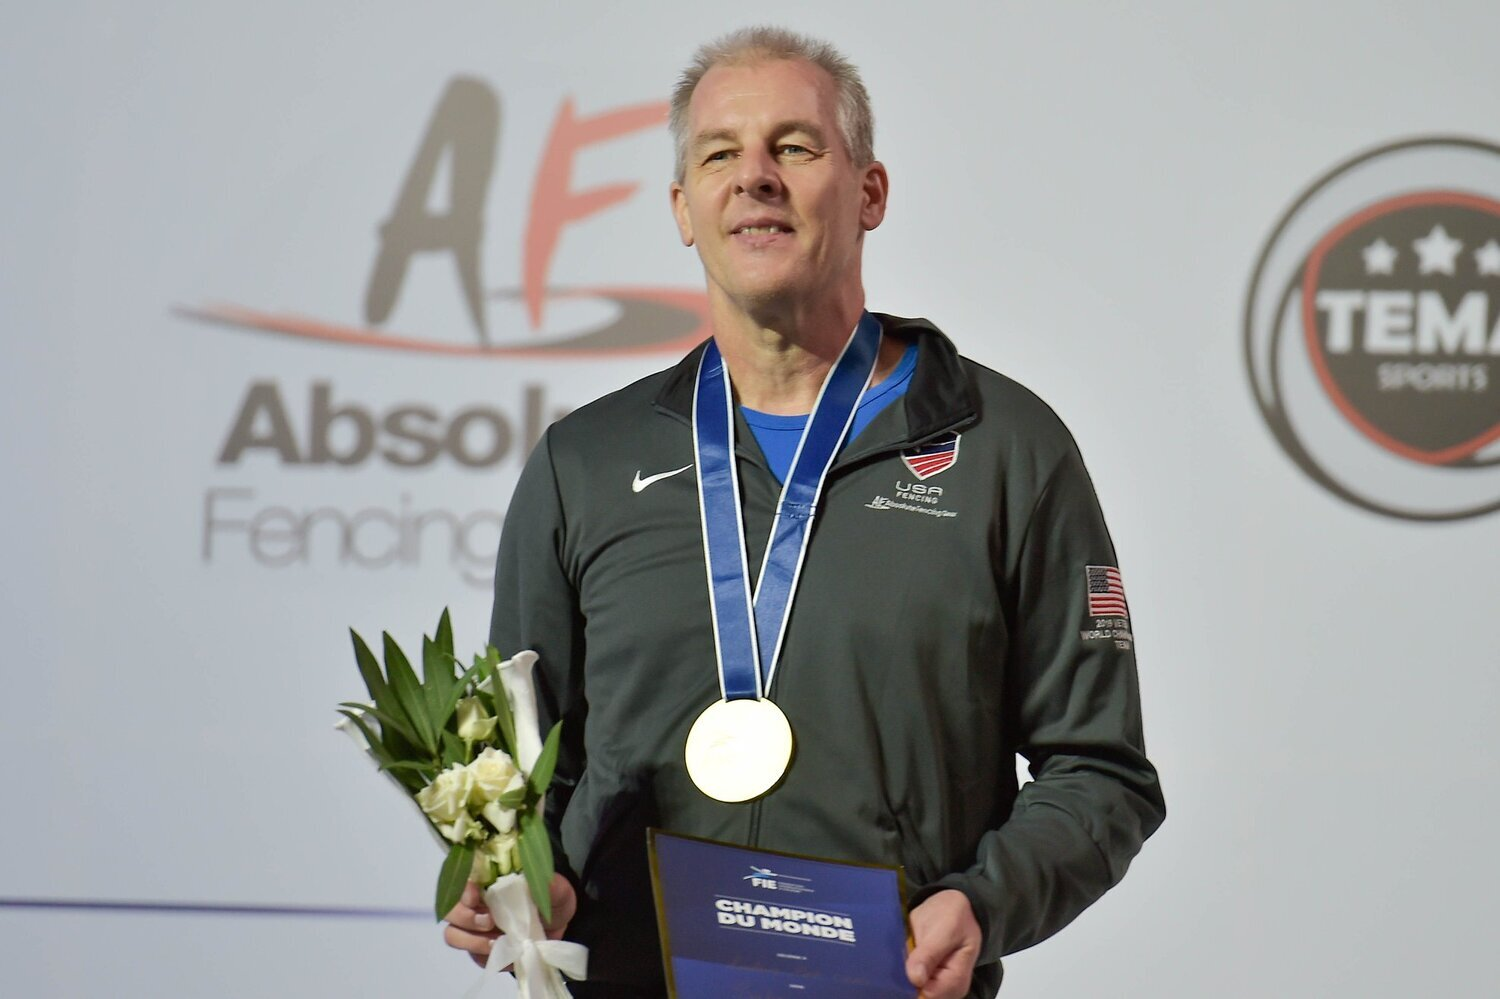 New world champion!  WFA's Mark Lundborg takes gold at the 2019 Veteran Fencing World Championships in the men's 50-59 saber division.